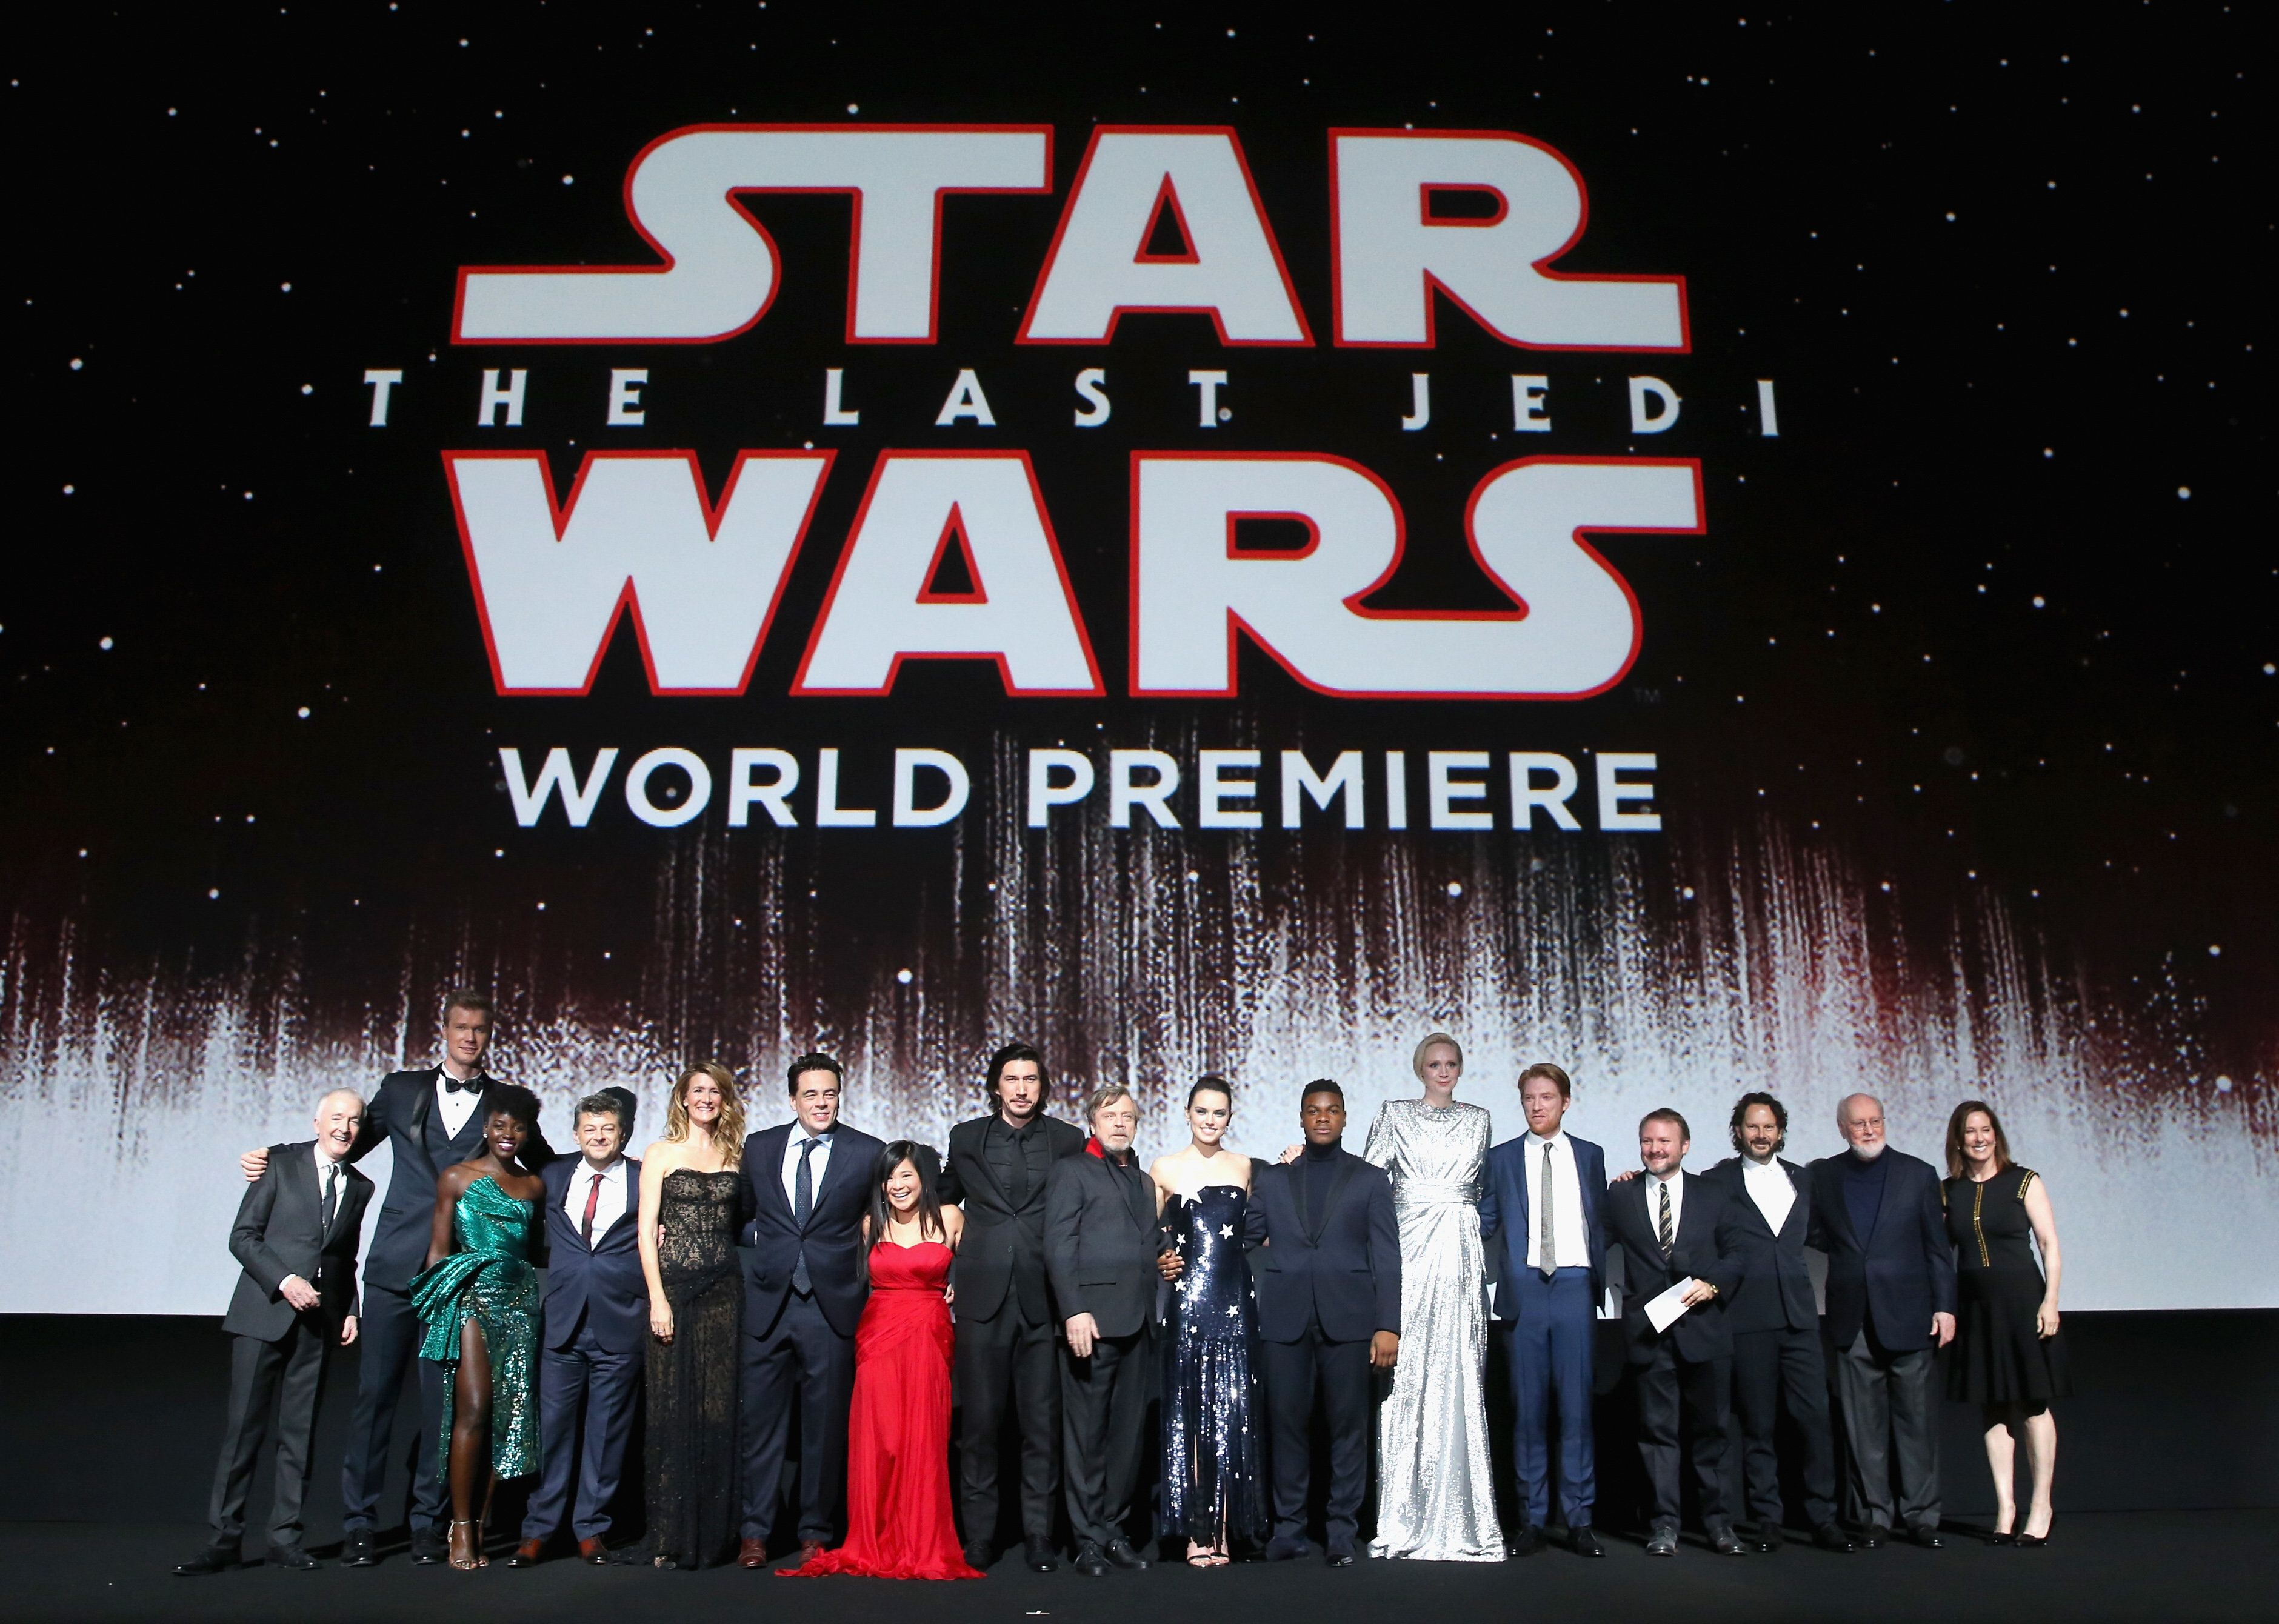 LOS ANGELES, CA - DECEMBER 09:  (L-R) Actors Anthony Daniels, Joonas Suotamo, Lupita Nyong'o, Andy Serkis, Laura Dern, Benicio del Toro, Kelly Marie Tran, Adam Driver, Mark Hamill, Daisy Ridley, John Boyega, Gwendoline Christie, Domhnall Gleeson, Writer/Director Rian Johnson, Producer Ram Bergman, Composer John Williams and Producer Kathleen Kennedy at Star Wars: The Last Jedi Premiere at The Shrine Auditorium on December 9, 2017 in Los Angeles, California.  (Photo by Jesse Grant/Getty Images for Disney)